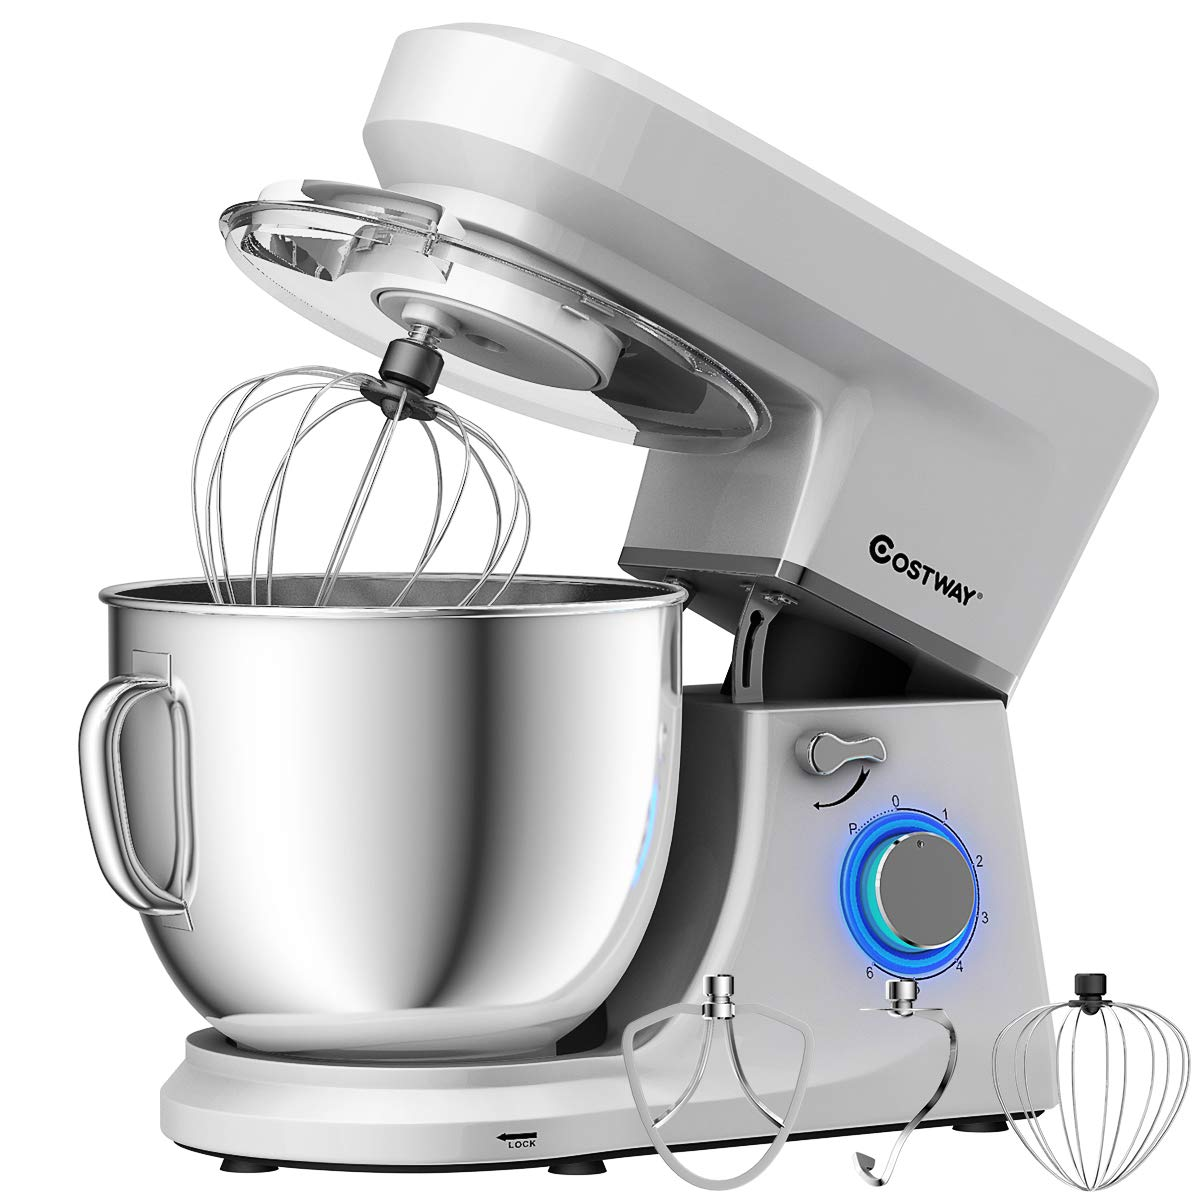 COSTWAY Stand Mixer, 660W Tilt-head Electric Kitchen Food Mixer with 6-Speed Control, 7.5-Quart Stainless Steel Bowl, Dough Hook, Beater, Whisk (Sliver-update) by COSTWAY